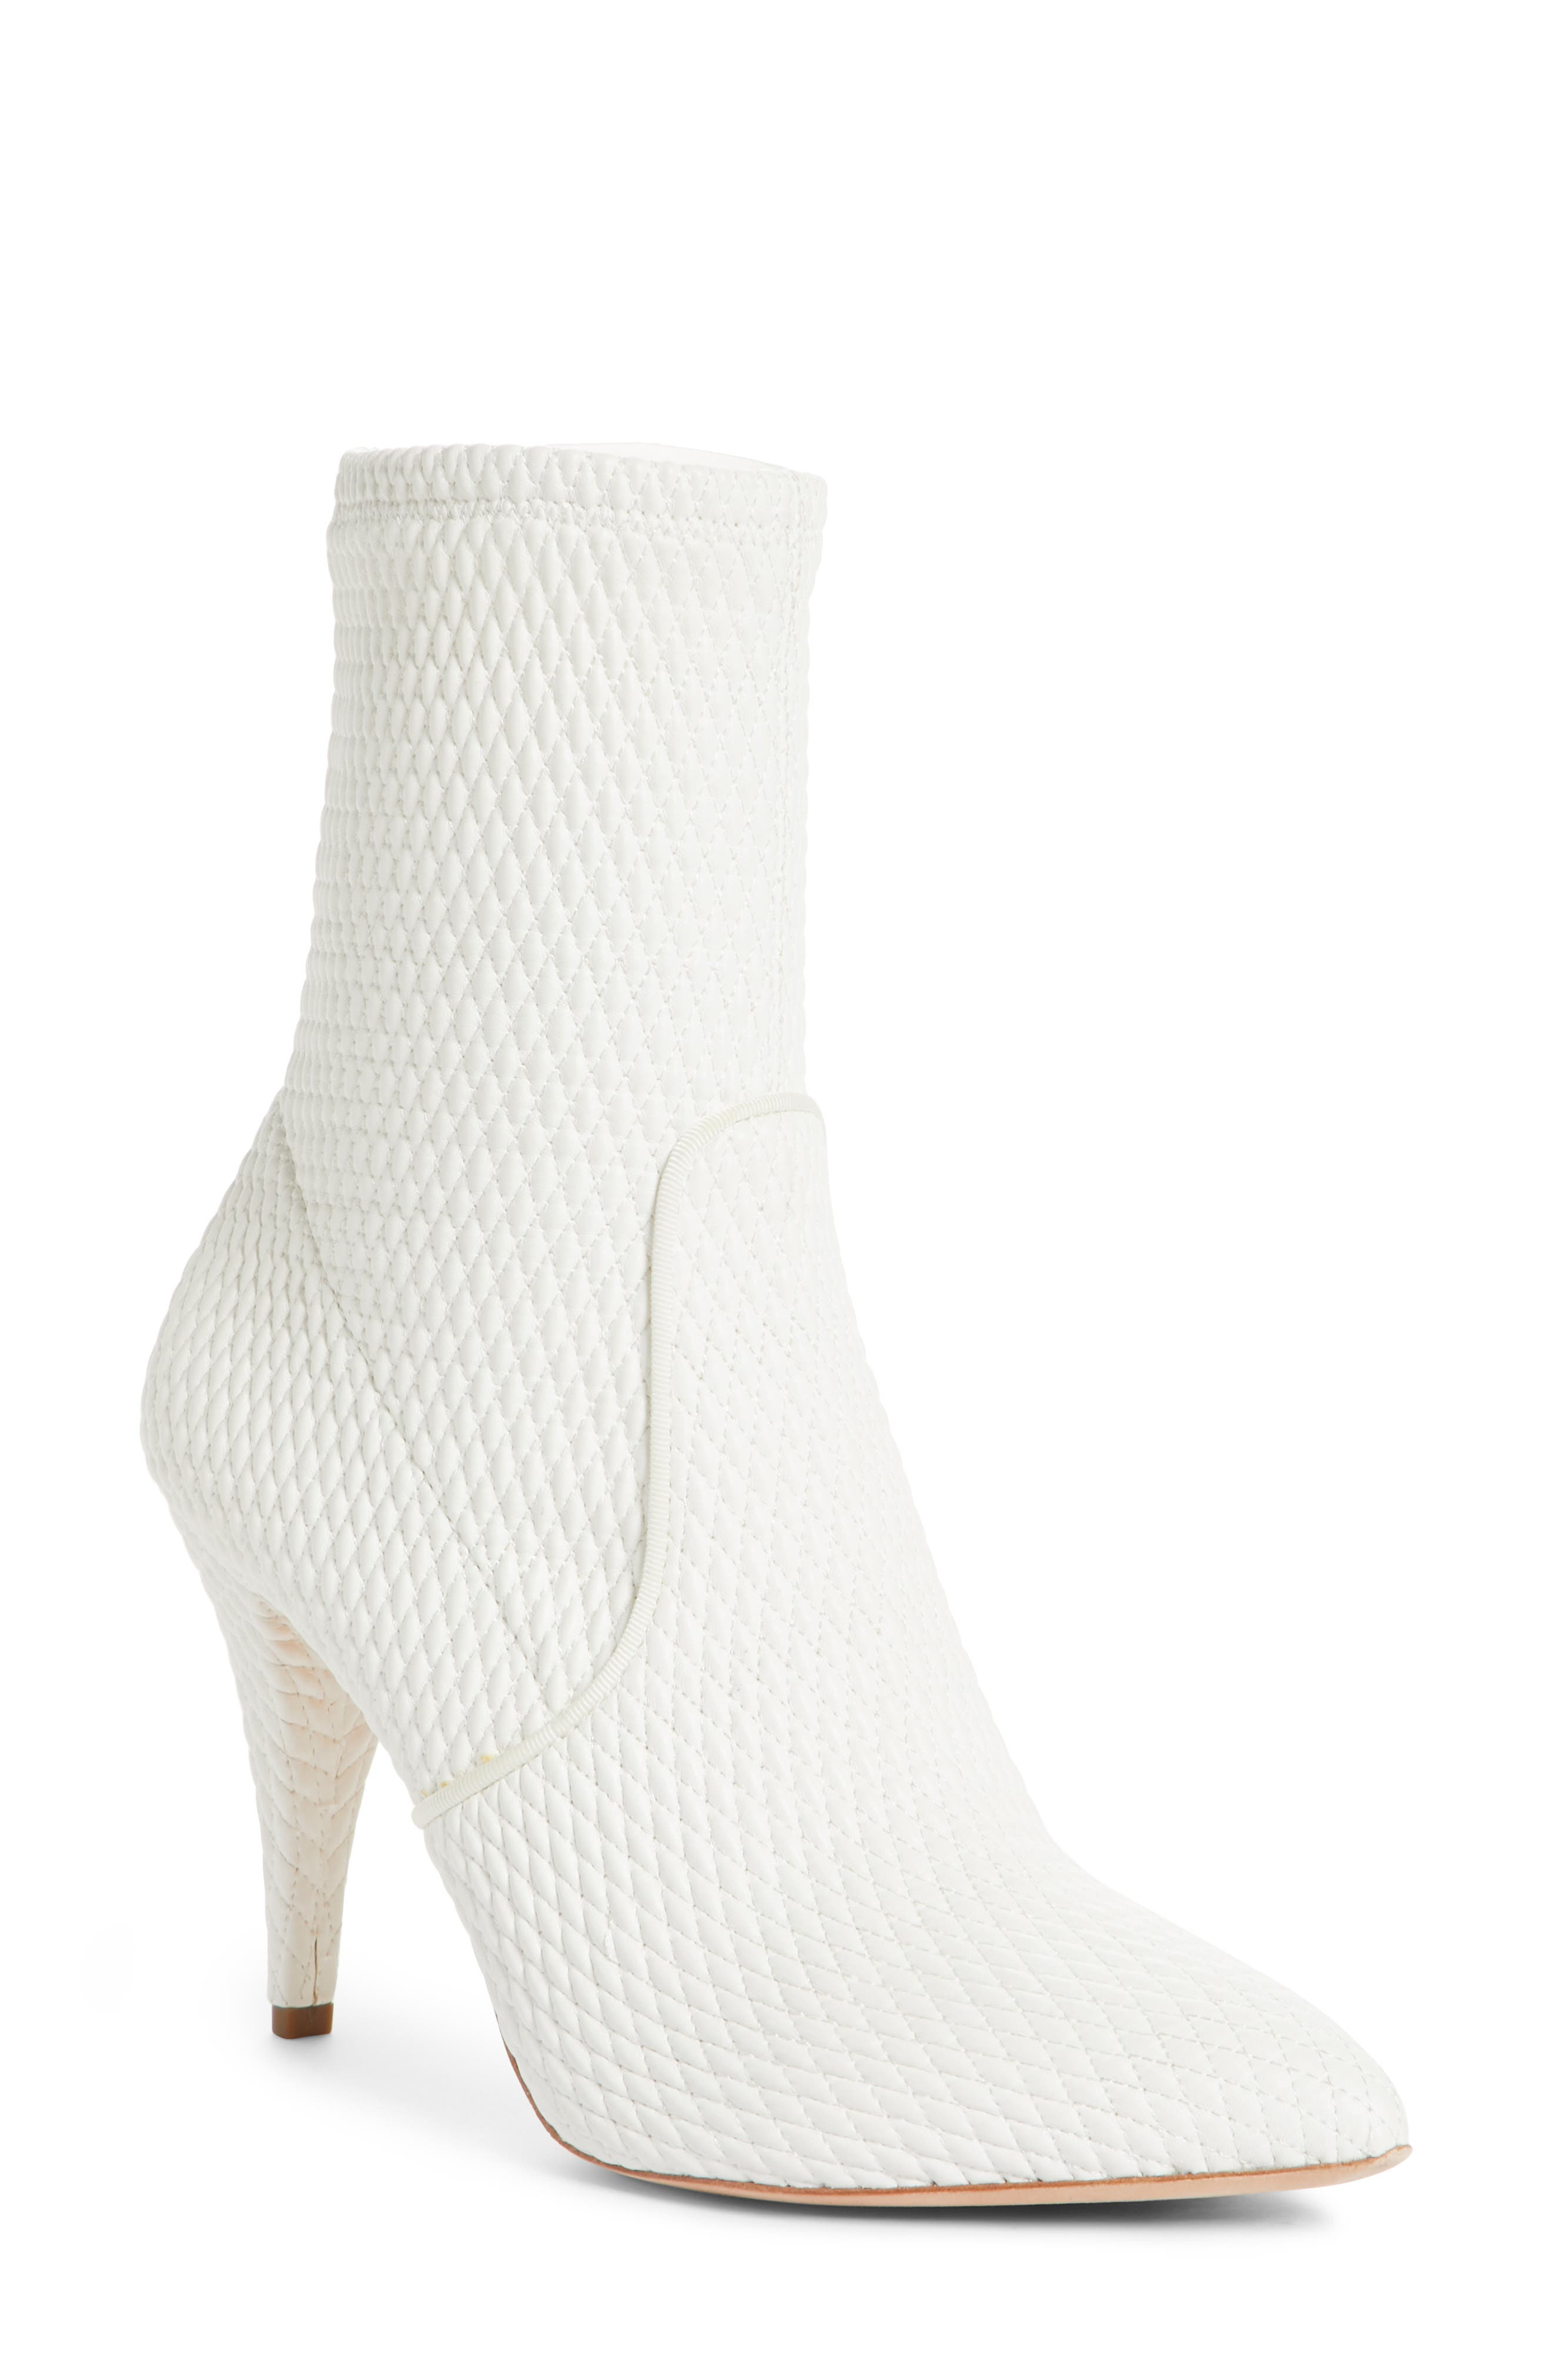 Hedde Pointy Toe Bootie,                             Main thumbnail 1, color,                             White